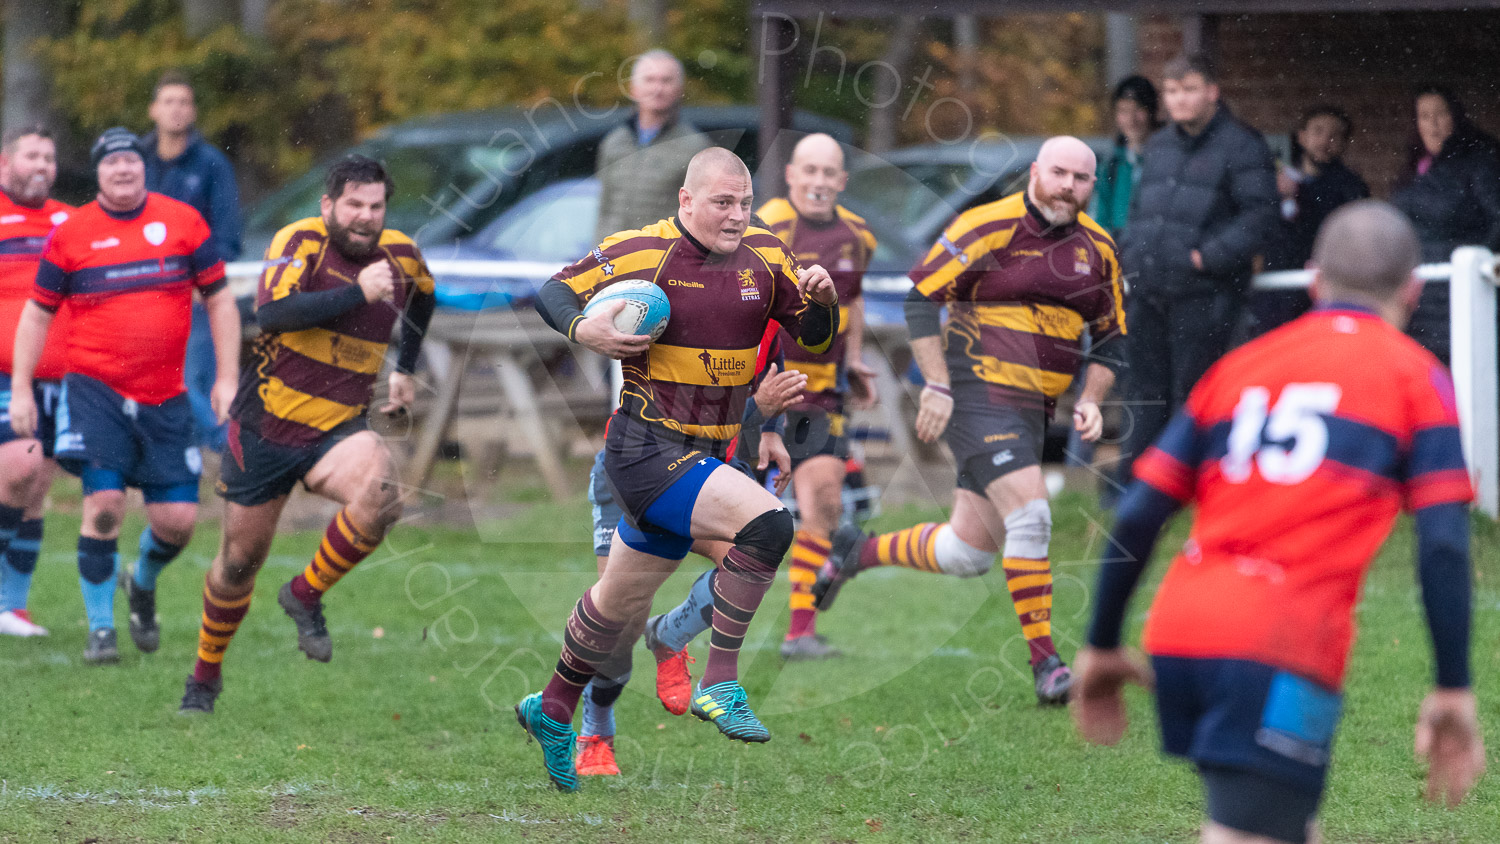 20181027 Amp Extras vs St Neots 2nd XV #2636